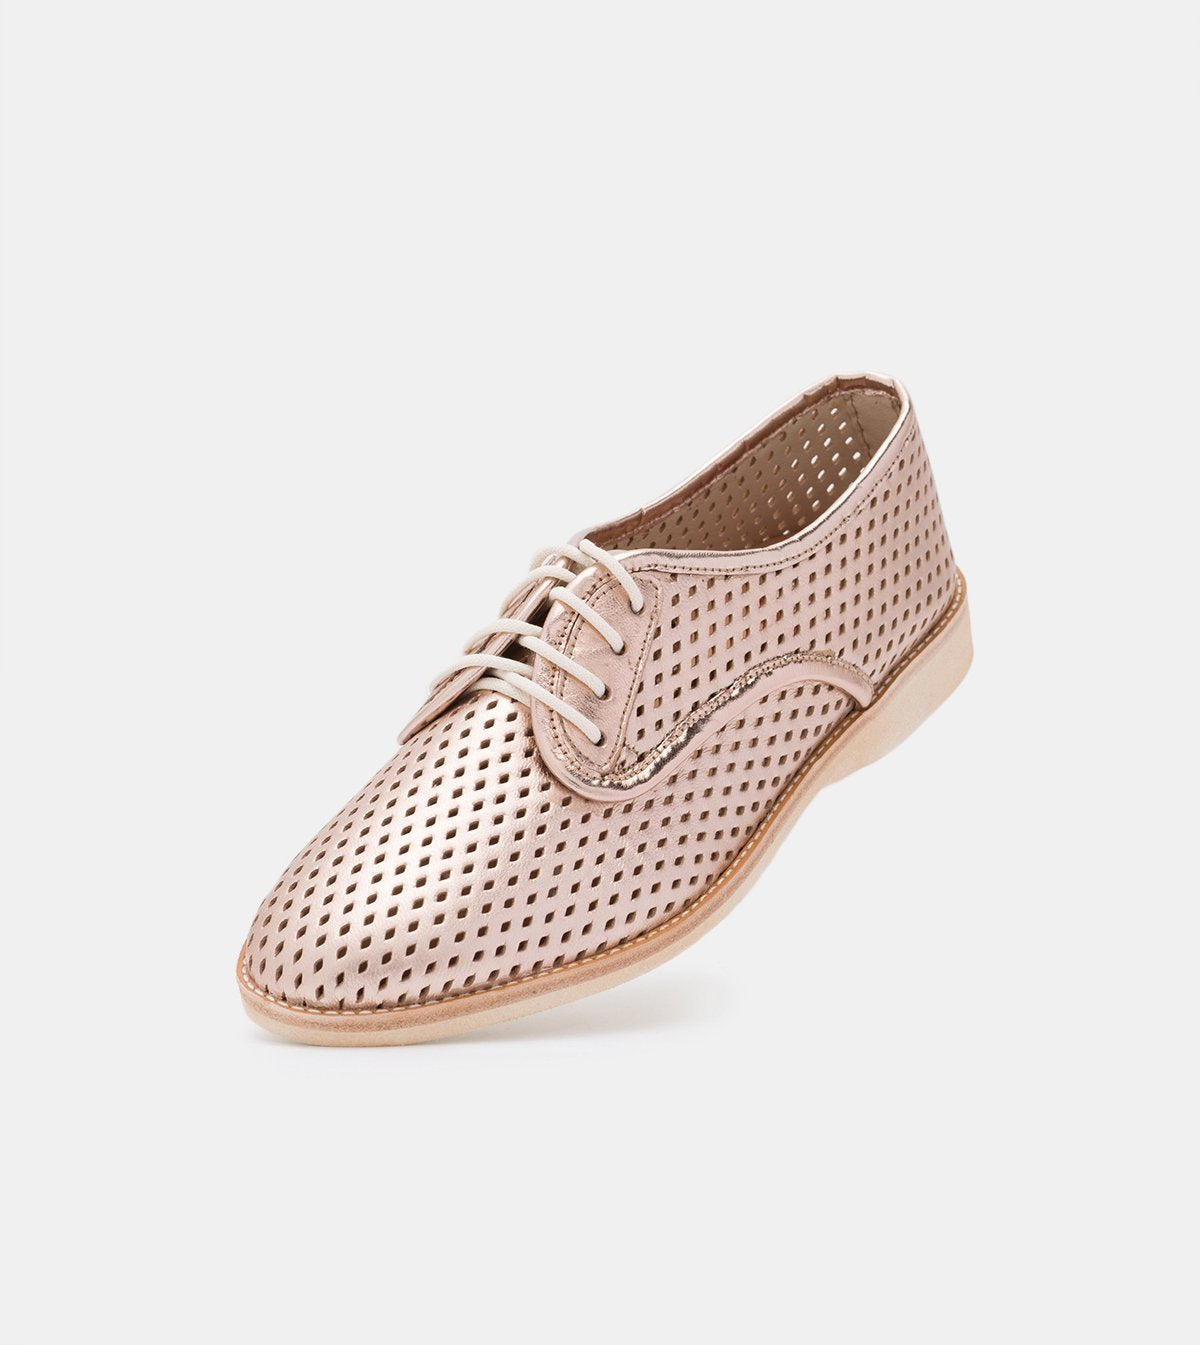 Rollie Derby Punch Rose Gold Flat Leather Comfortable